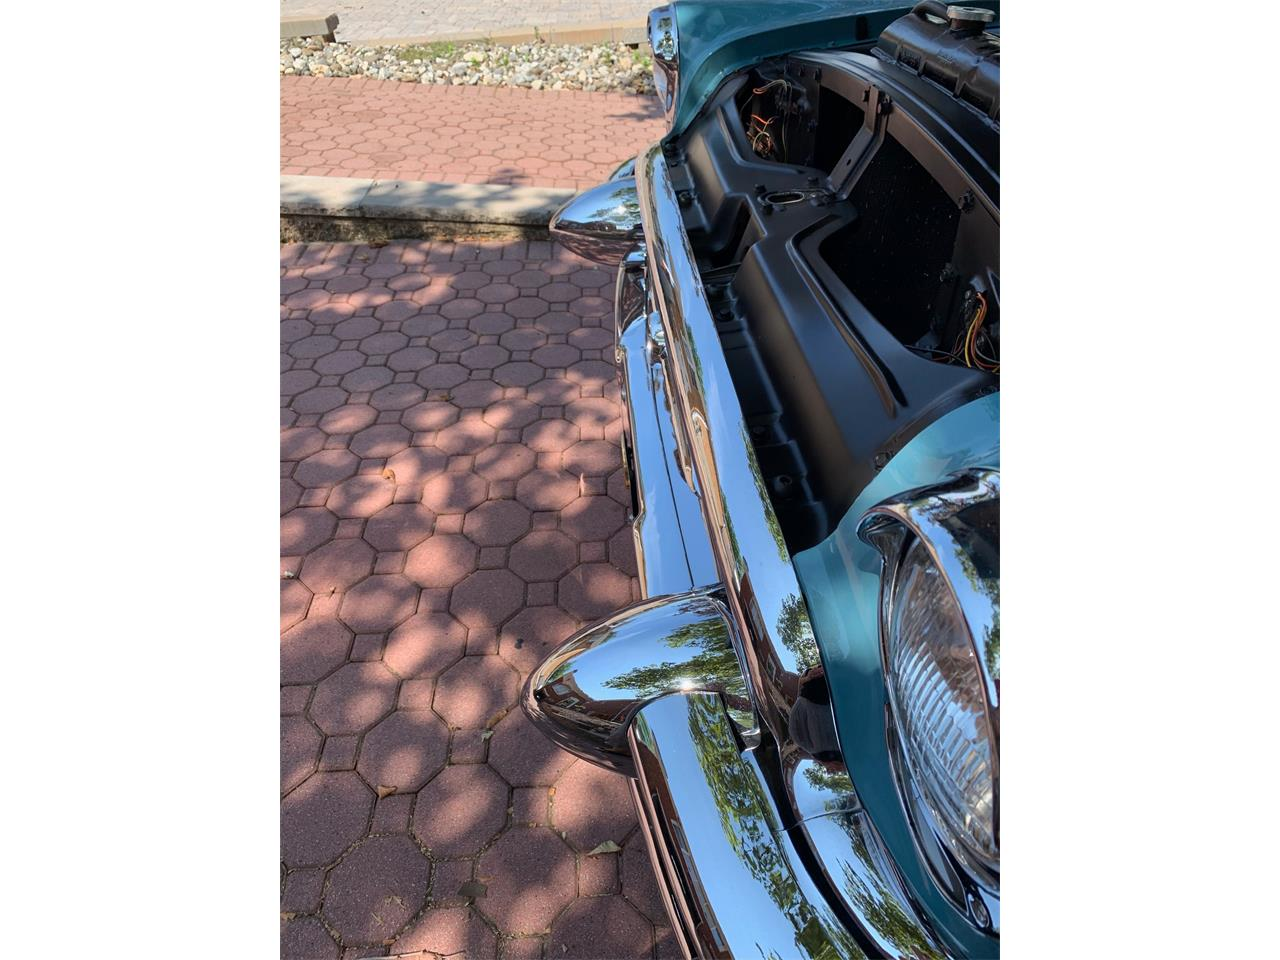 1955 Buick Roadmaster for sale in STATEN ISLAND, NY – photo 13